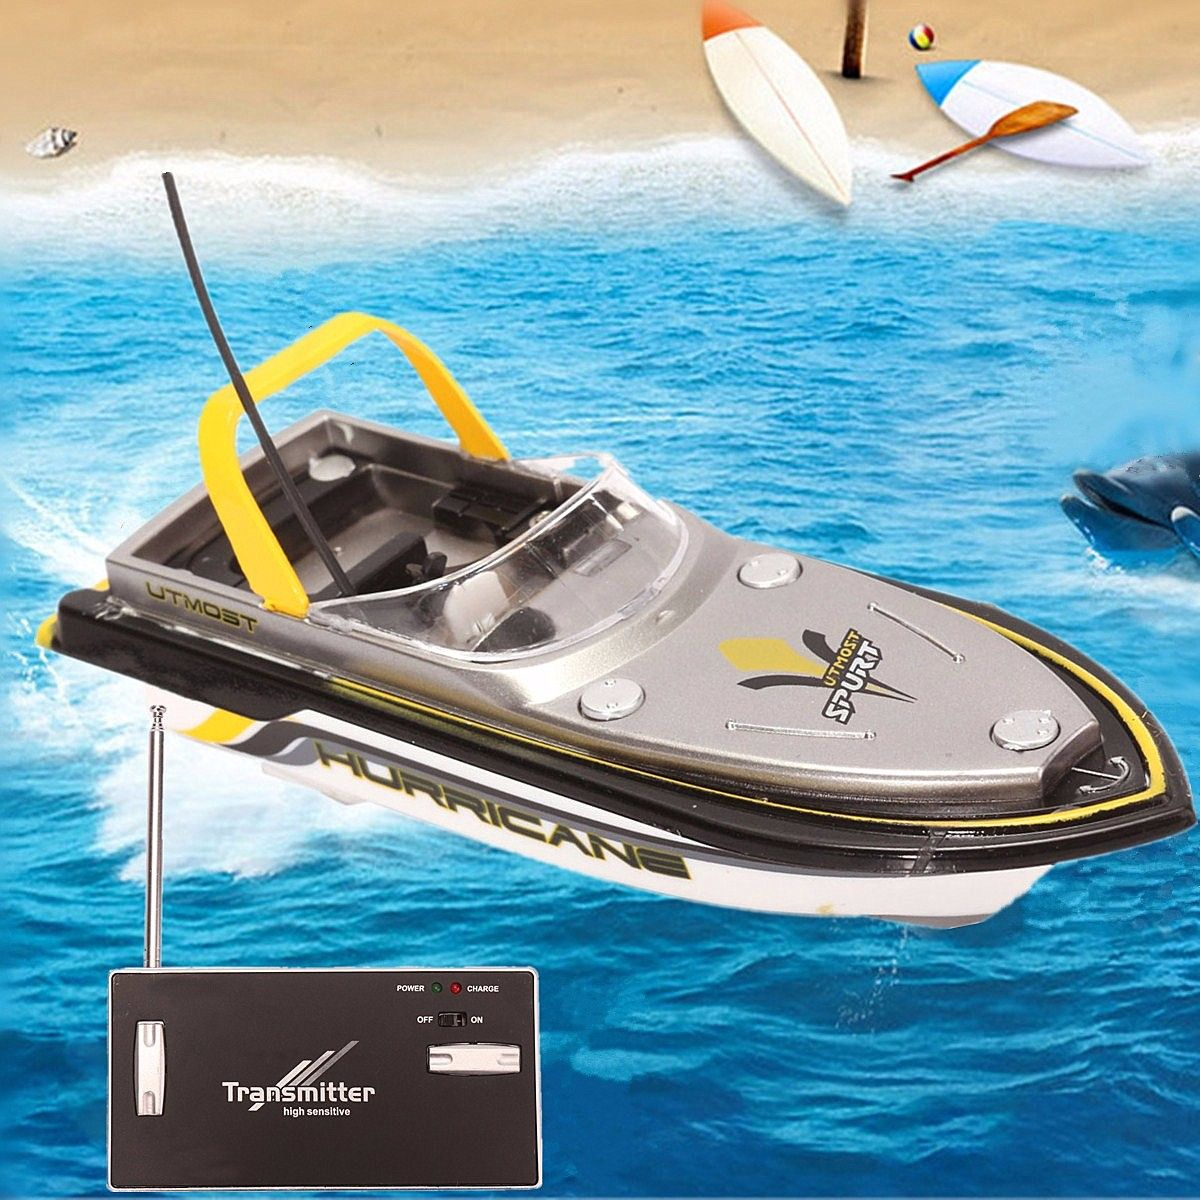 Remote Control Ship Electric RC Radio Super Mini Speed Boat Dual Motor Kids Toy Quick Charge 40MHz Gift for Boy Smart FrequencyRemote Control Ship Electric RC Radio Super Mini Speed Boat Dual Motor Kids Toy Quick Charge 40MHz Gift for Boy Smart Frequency